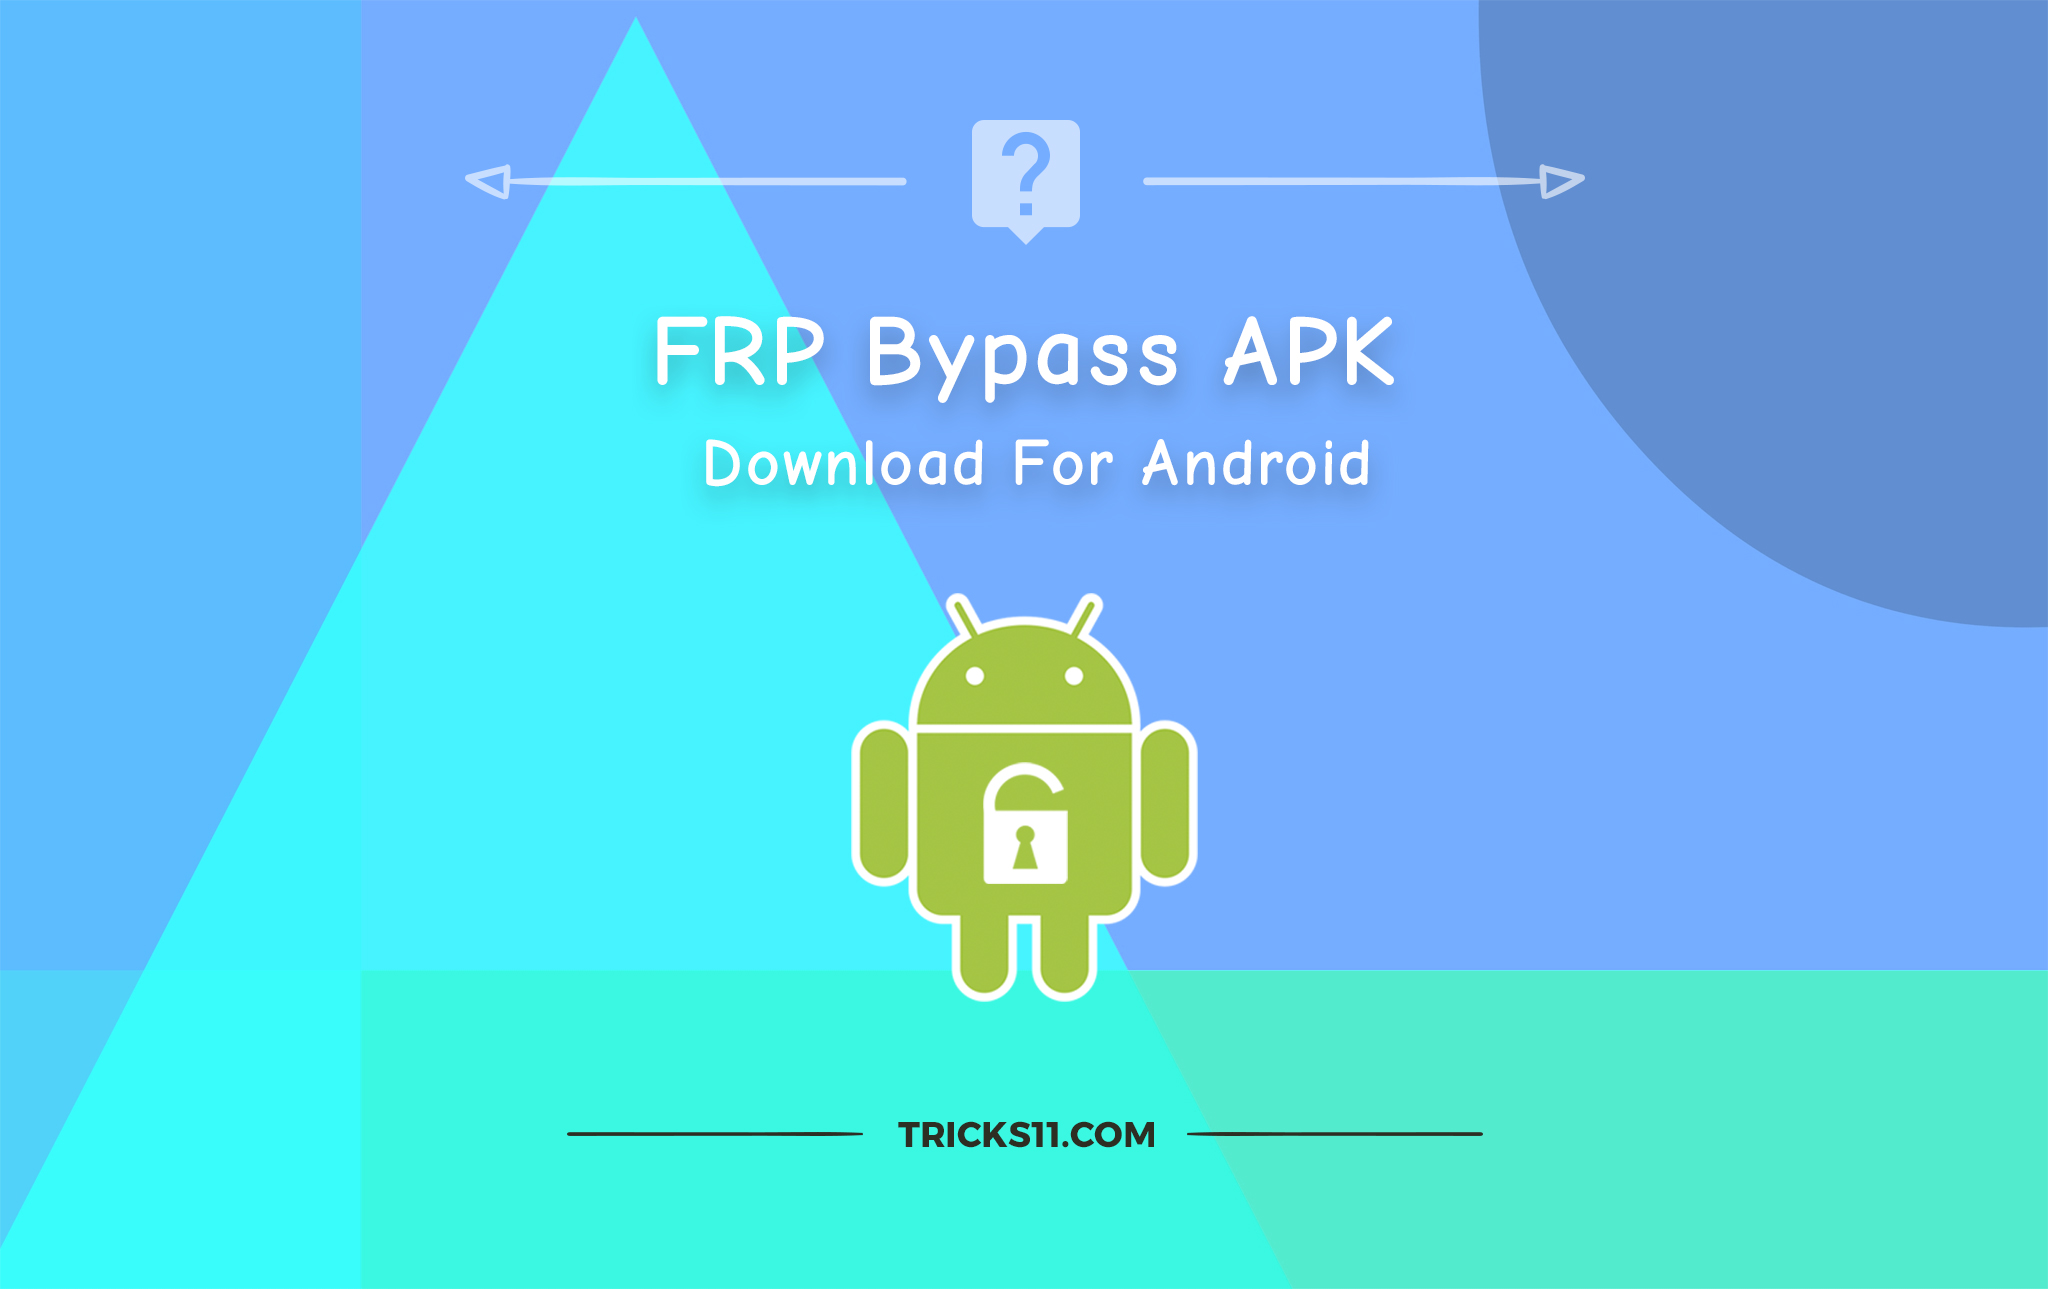 how to download frp bypass apk tool